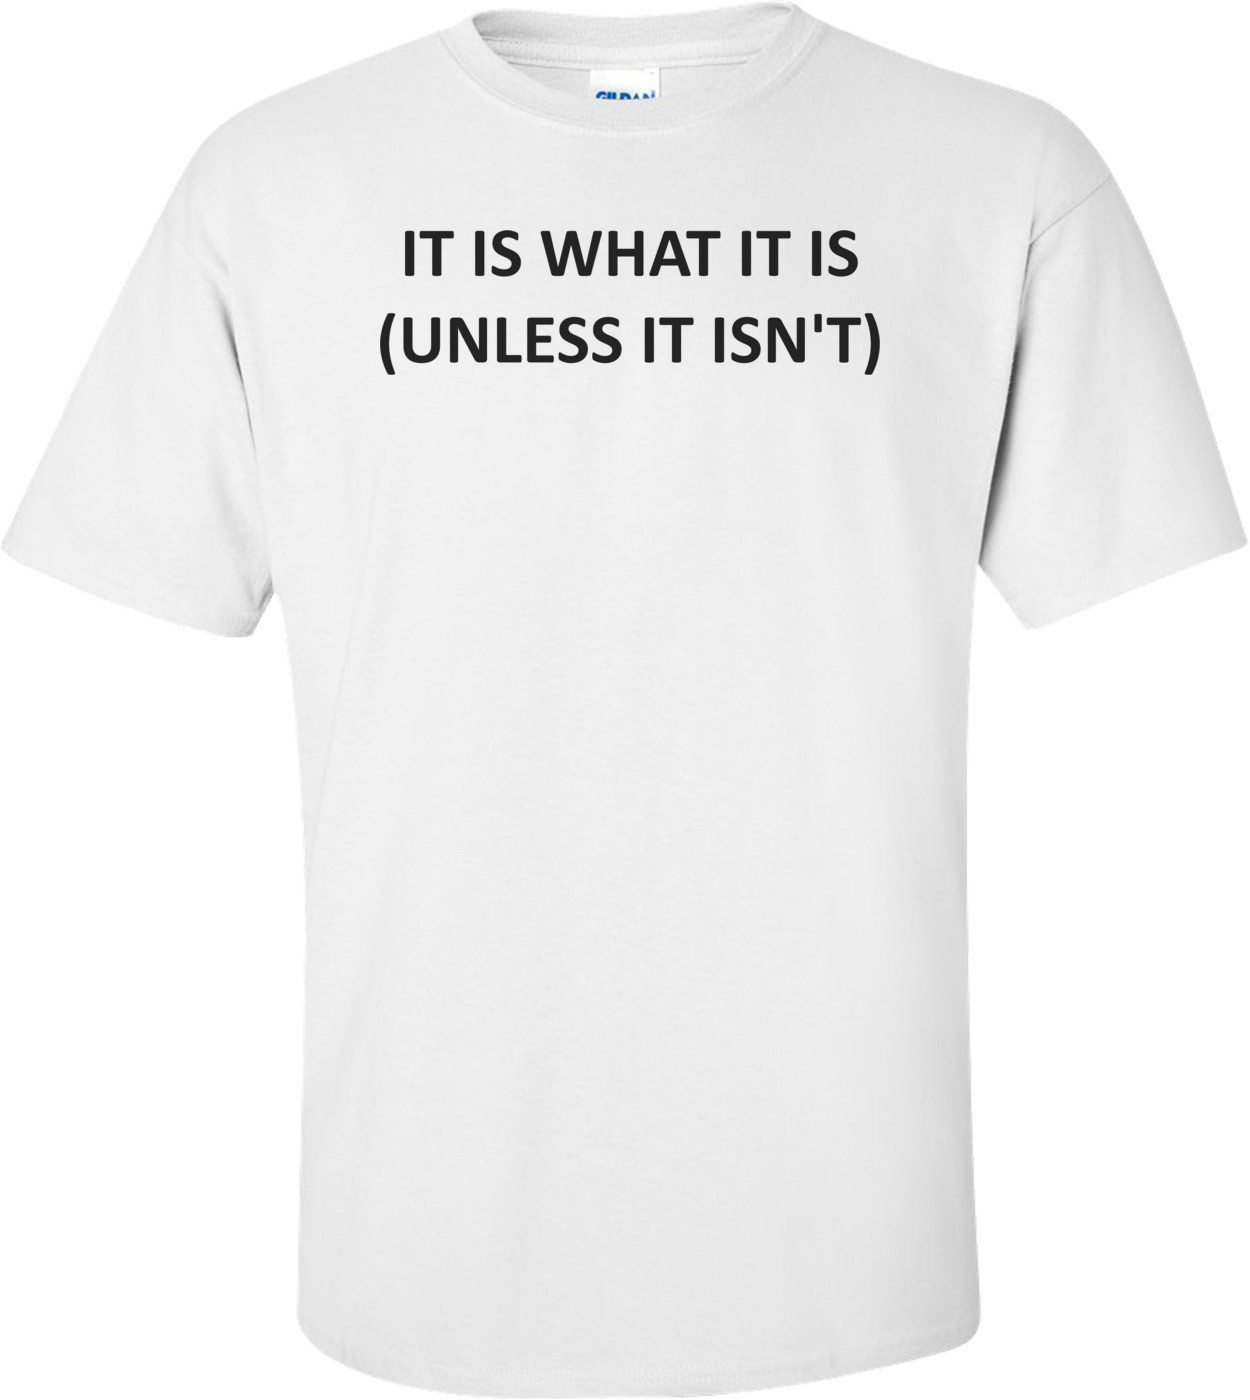 IT IS WHAT IT IS (UNLESS IT ISN'T) Shirt